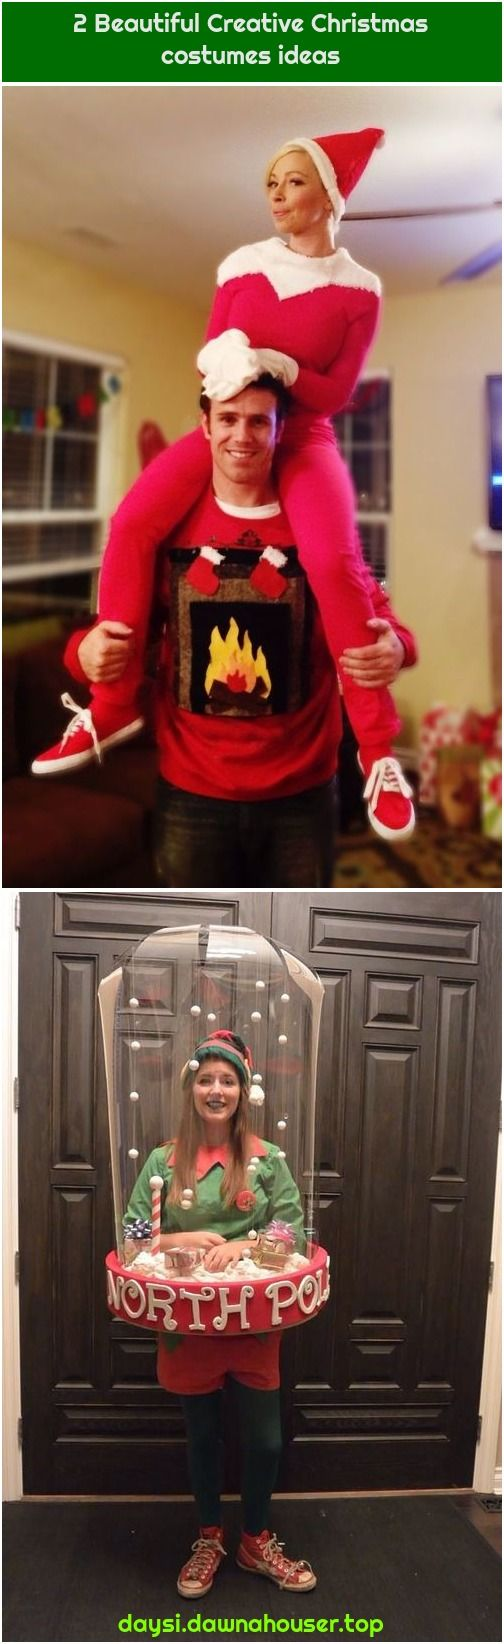 2 Beautiful Creative Christmas costumes ideas My Halloween costume this year I was a snowglobe My Halloween costume this year I was a snowglobe  My Halloween costume this...